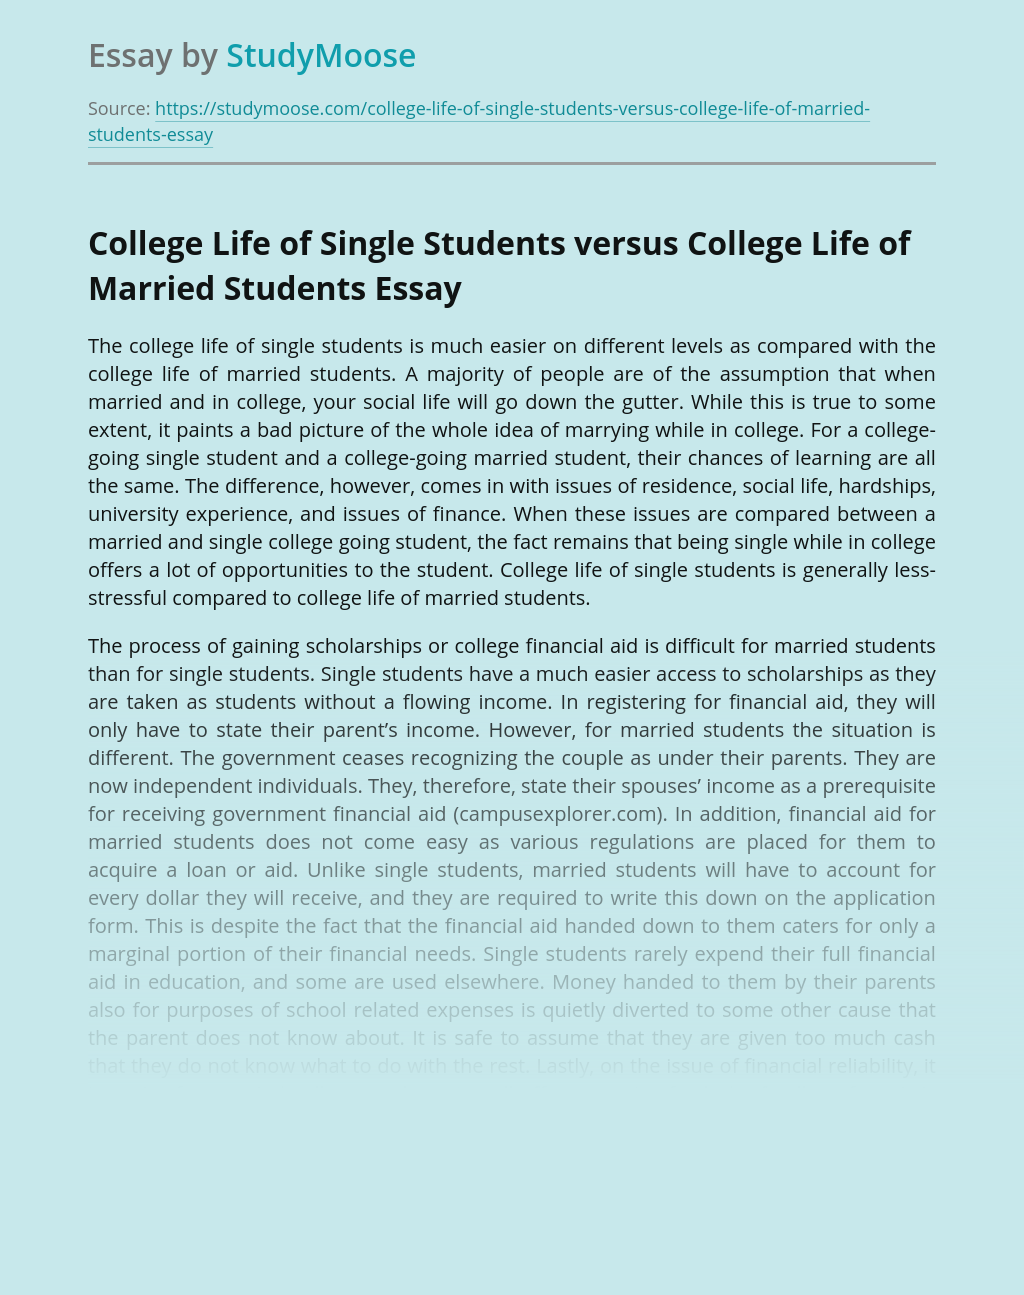 College Life of Single Students versus College Life of Married Students